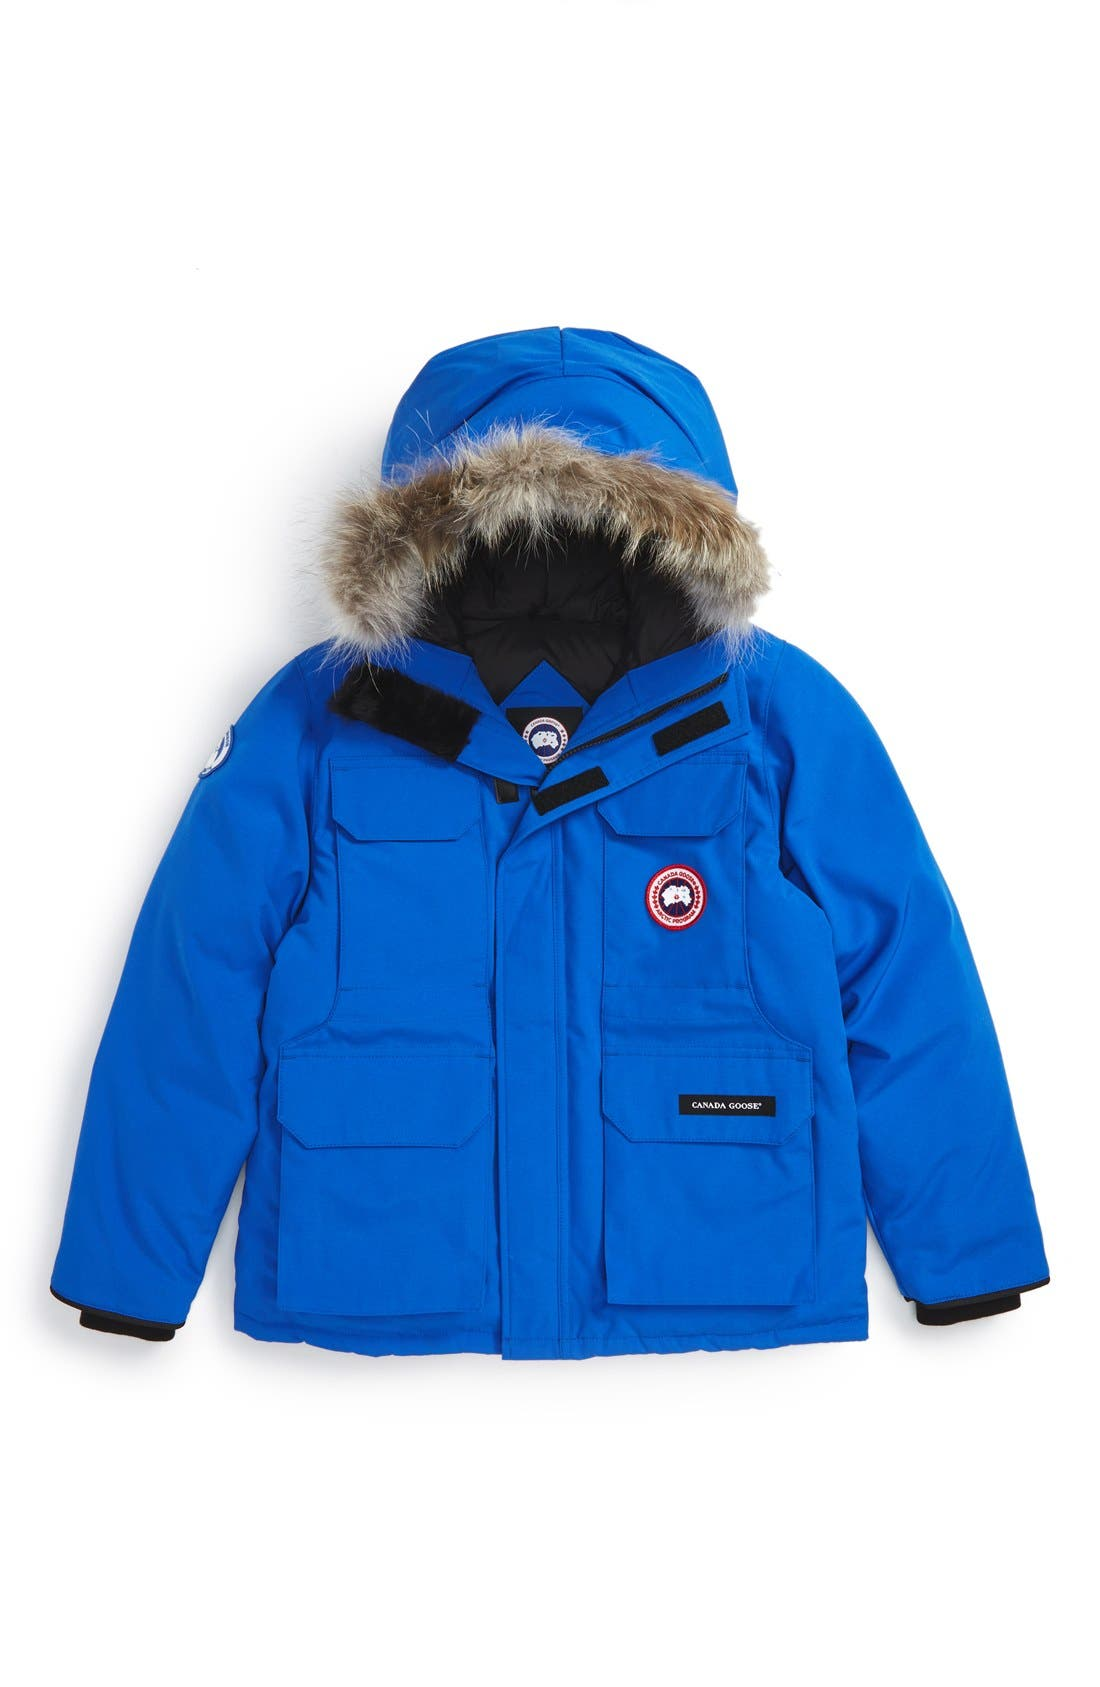 'PBI Expedition' Waterproof Down Parka with Genuine Coyote Fur Trim,                             Main thumbnail 1, color,                             ROYAL BLUE